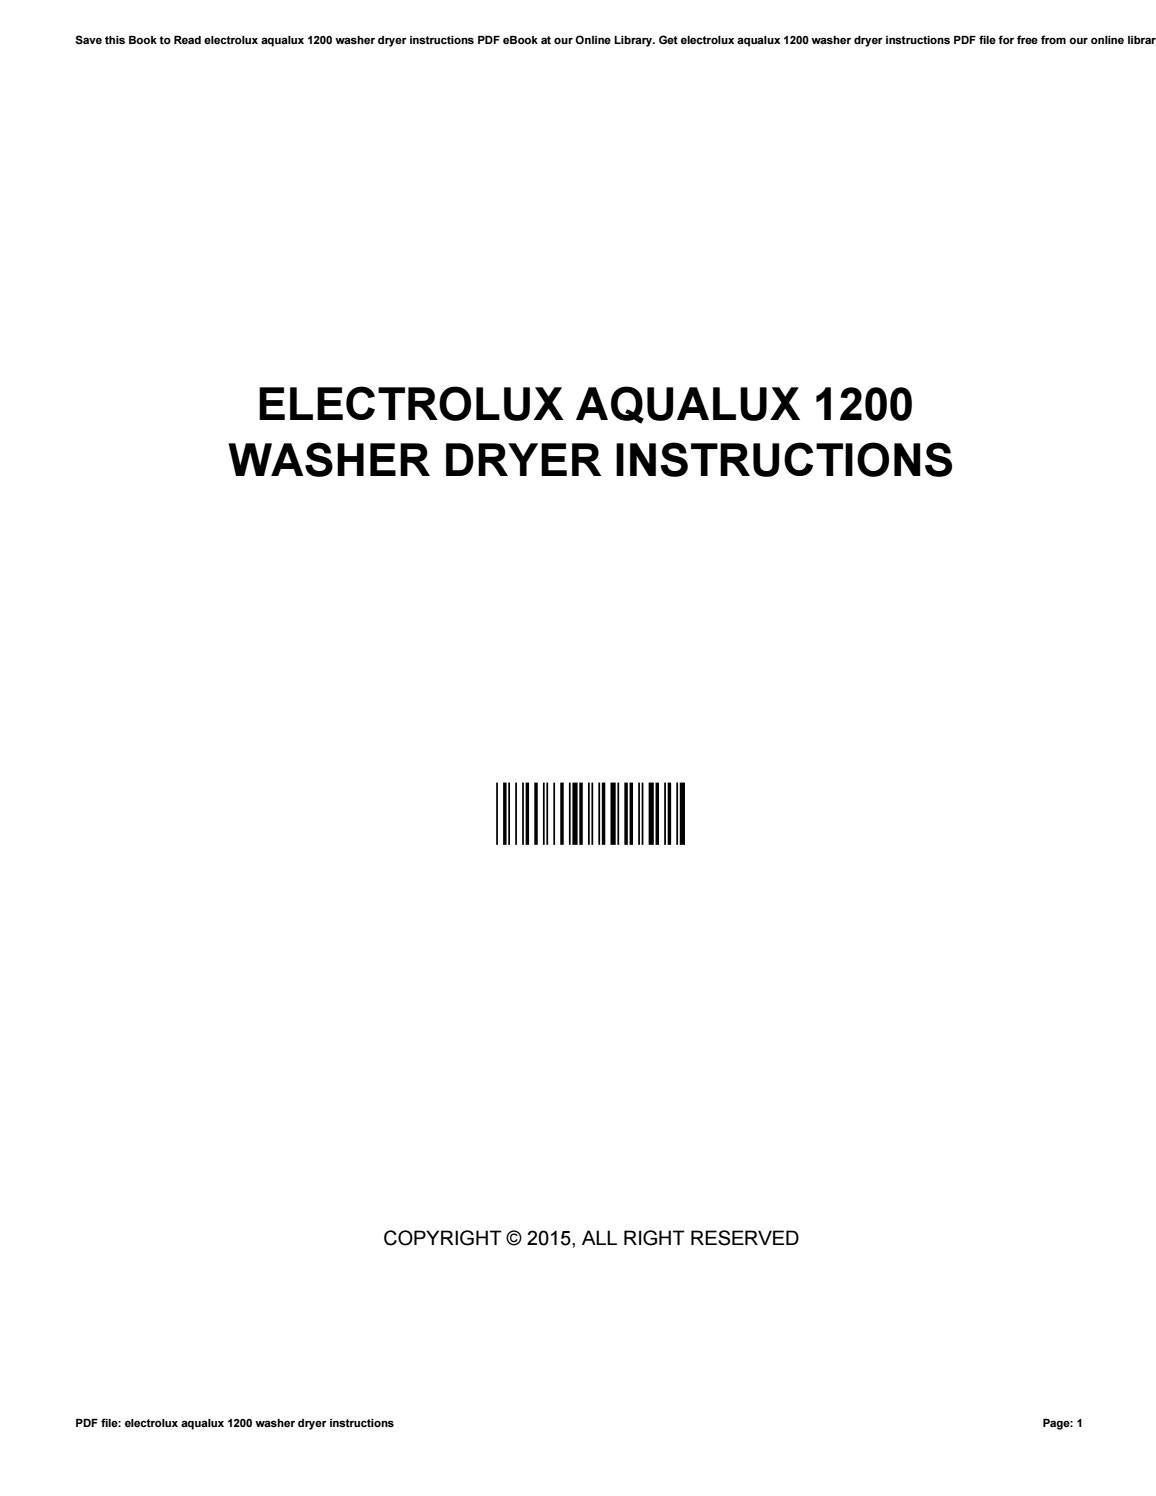 electrolux aqualux 1200 washer dryer instructions by mikebiggs3613 rh issuu com